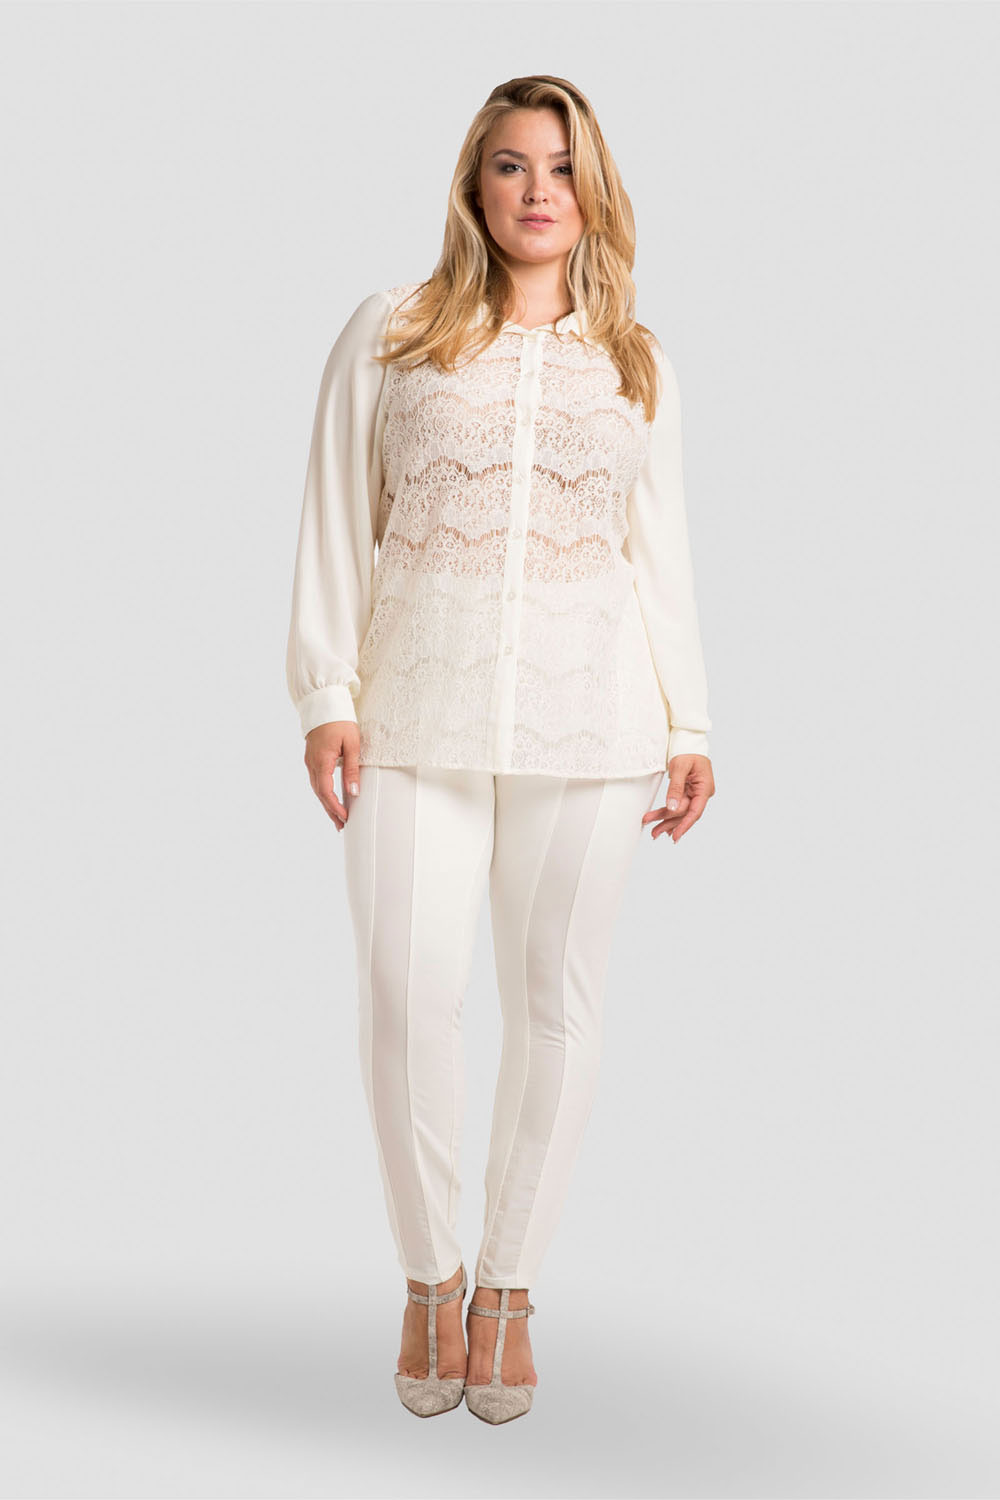 Plus Size Women's Ivory Collared Shirt Lace